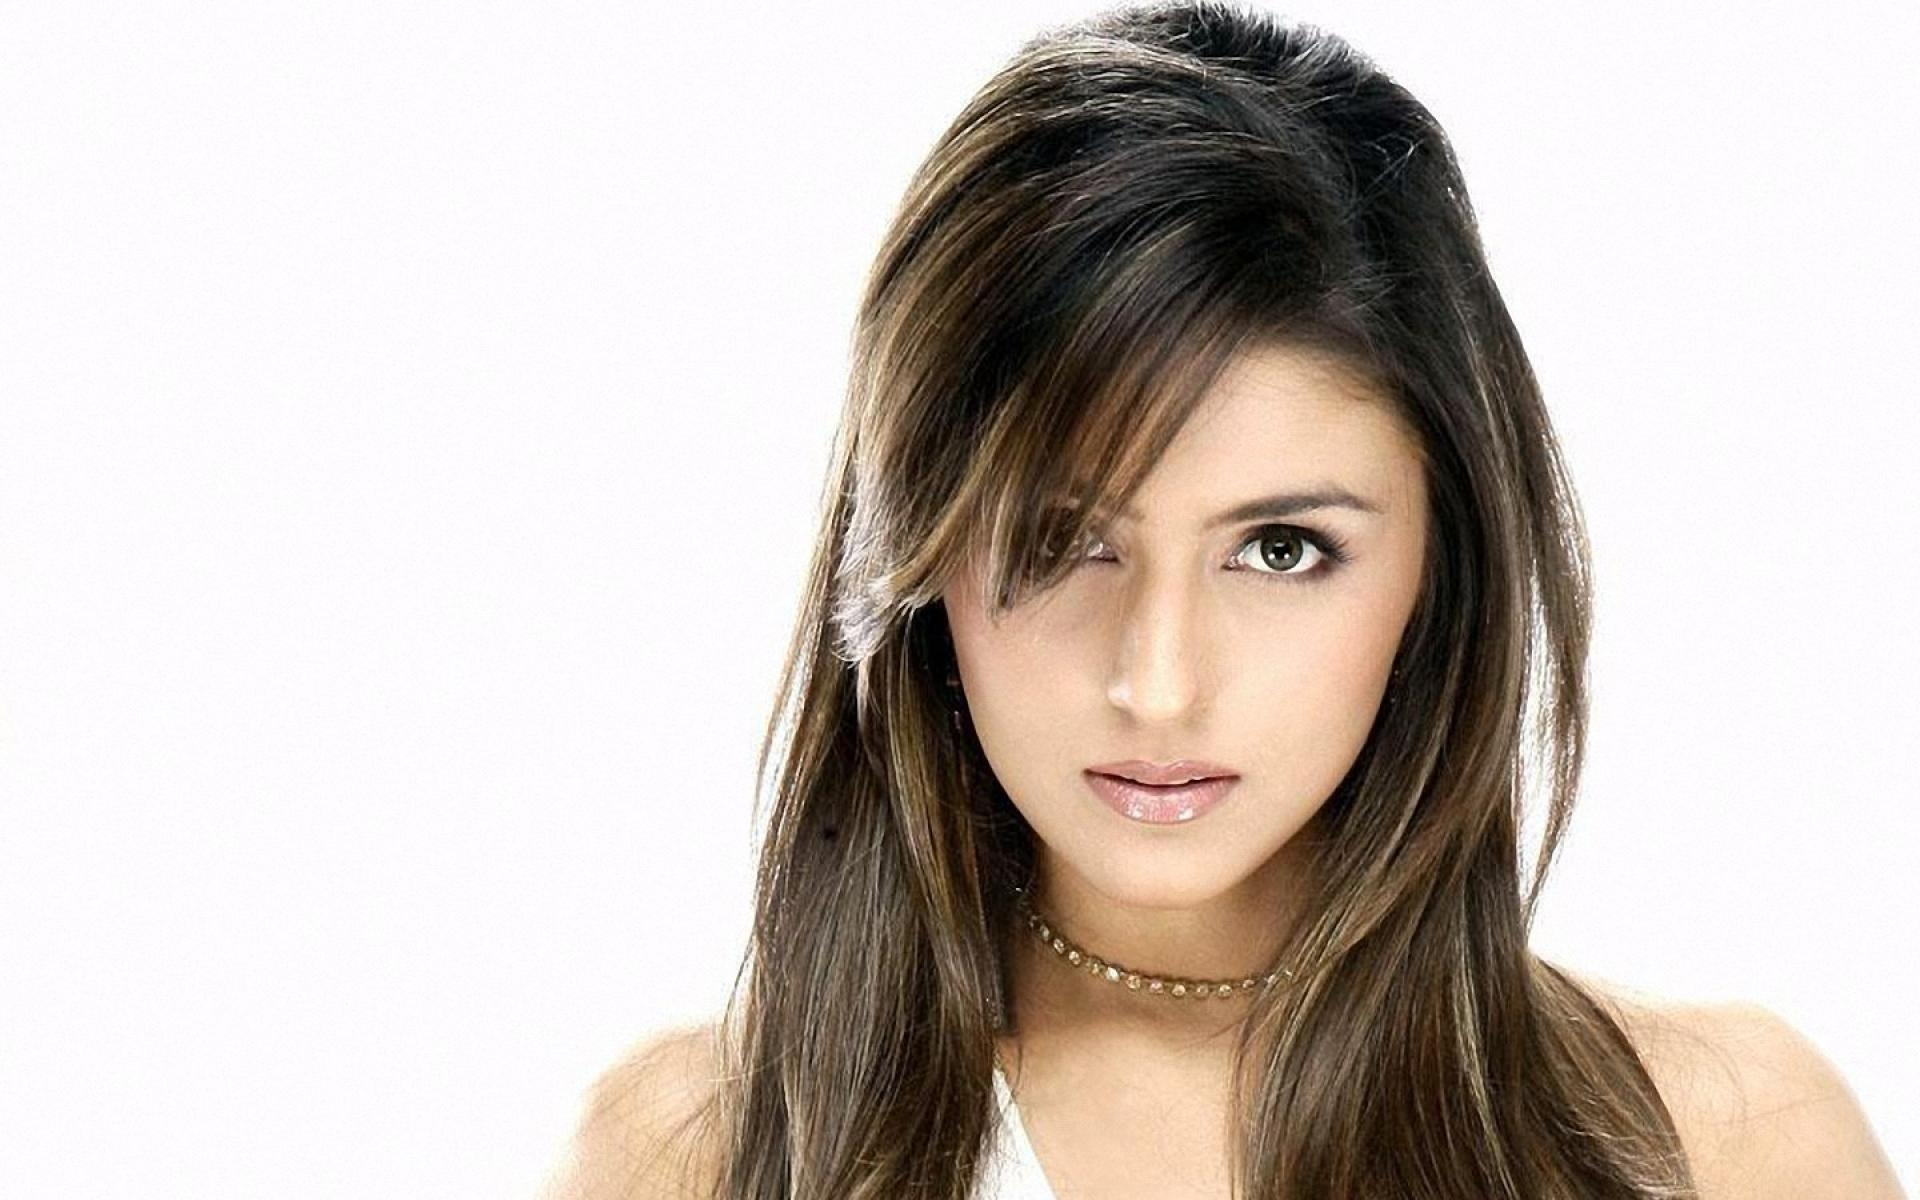 Indian Girl Wallpaper Free Pictures Of Aarti Mann Pictures Of Celebrities